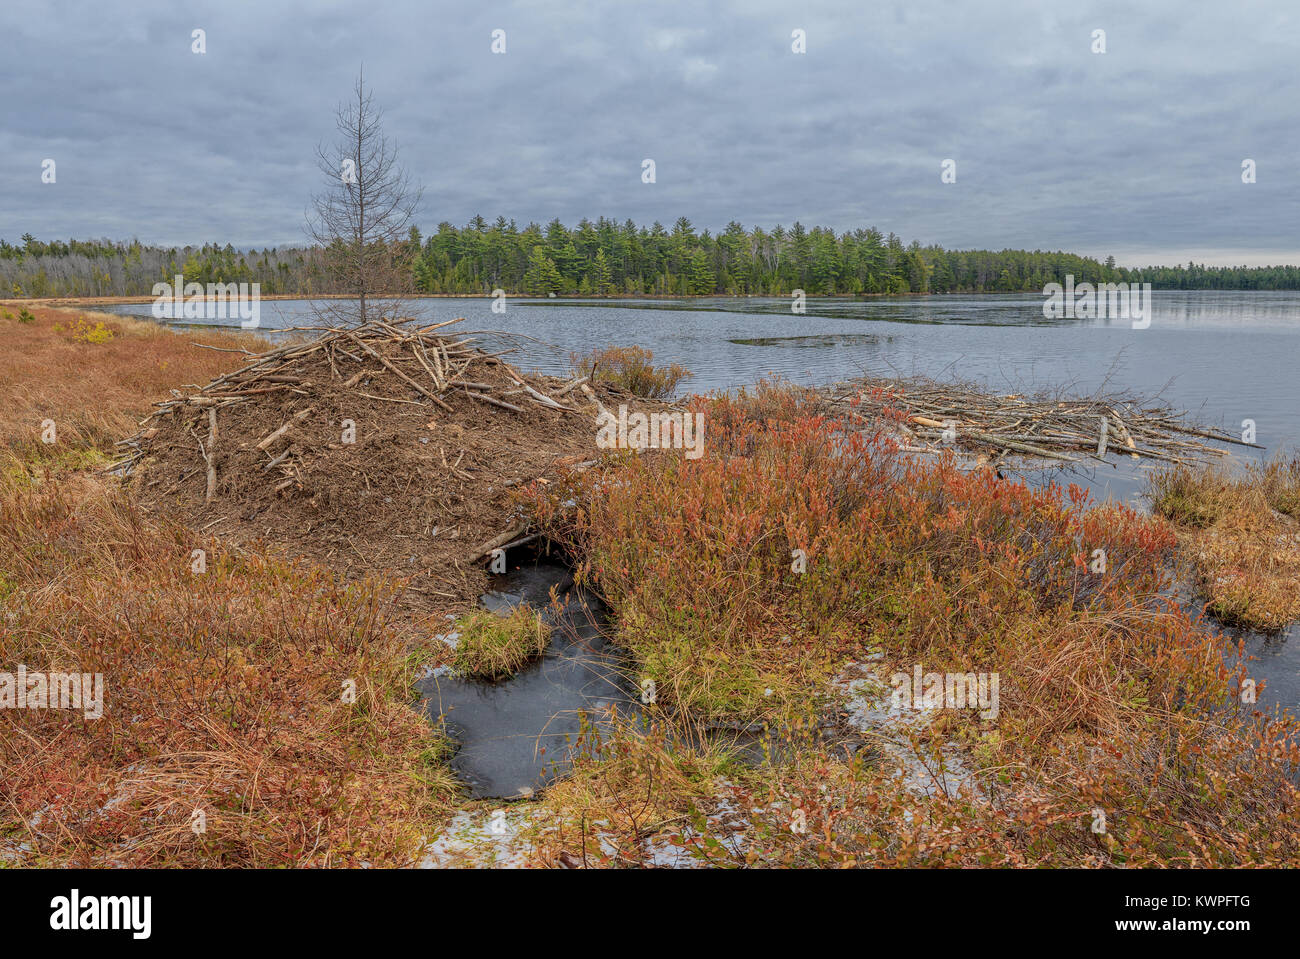 A Beaver lodge and their winter food cache. - Stock Image